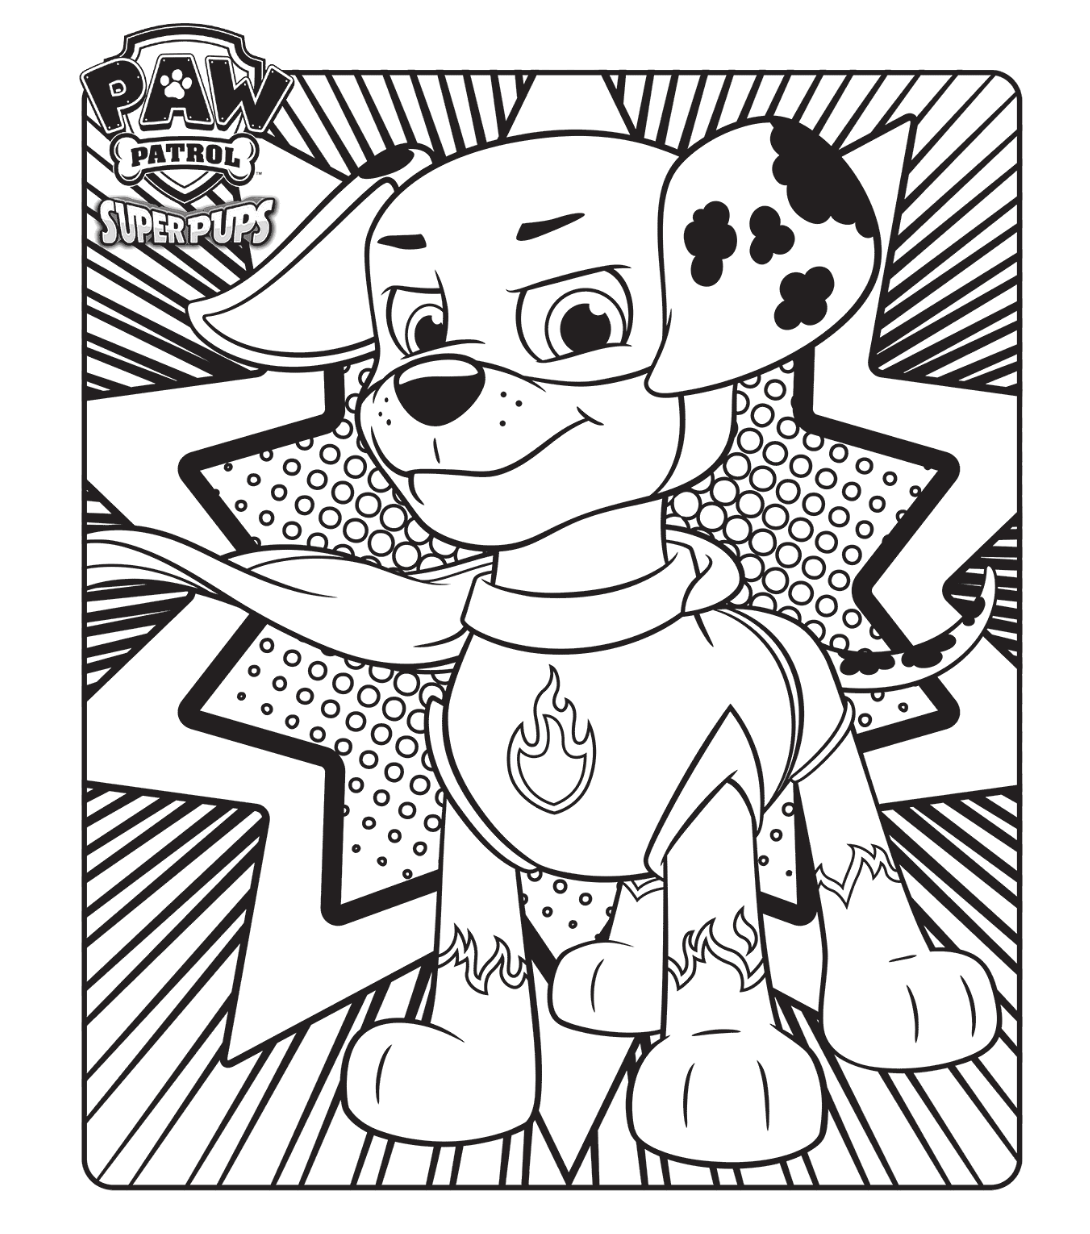 Paw Patrol Super Pups Colouring Page With Images Paw